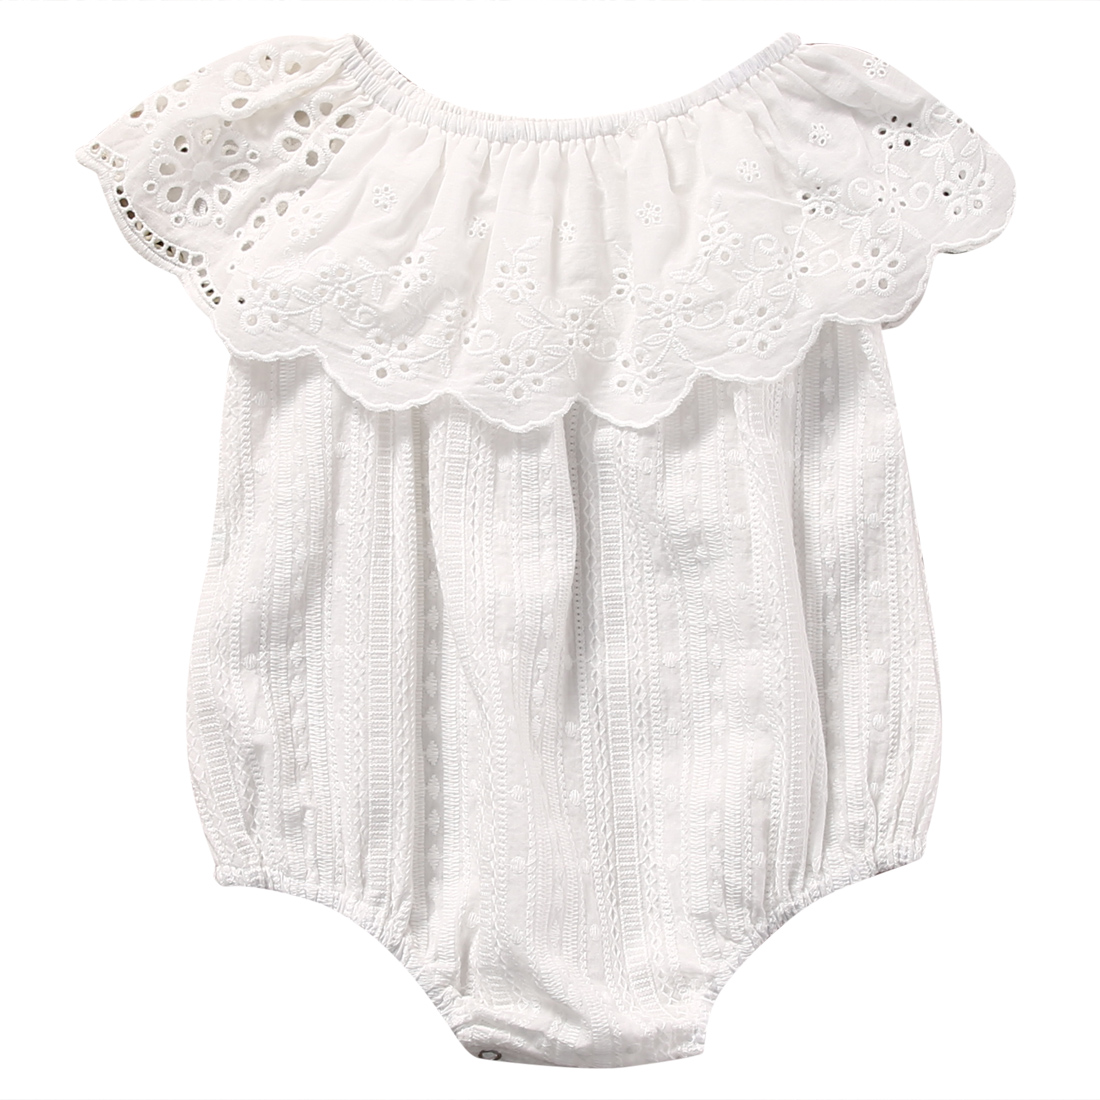 2017 Summer Newborn Baby Girl White Lace Romper Jumpsuit Floral Infant Clothes Outfit Sunsuit baby clothing summer infant newborn baby romper short sleeve girl boys jumpsuit new born baby clothes